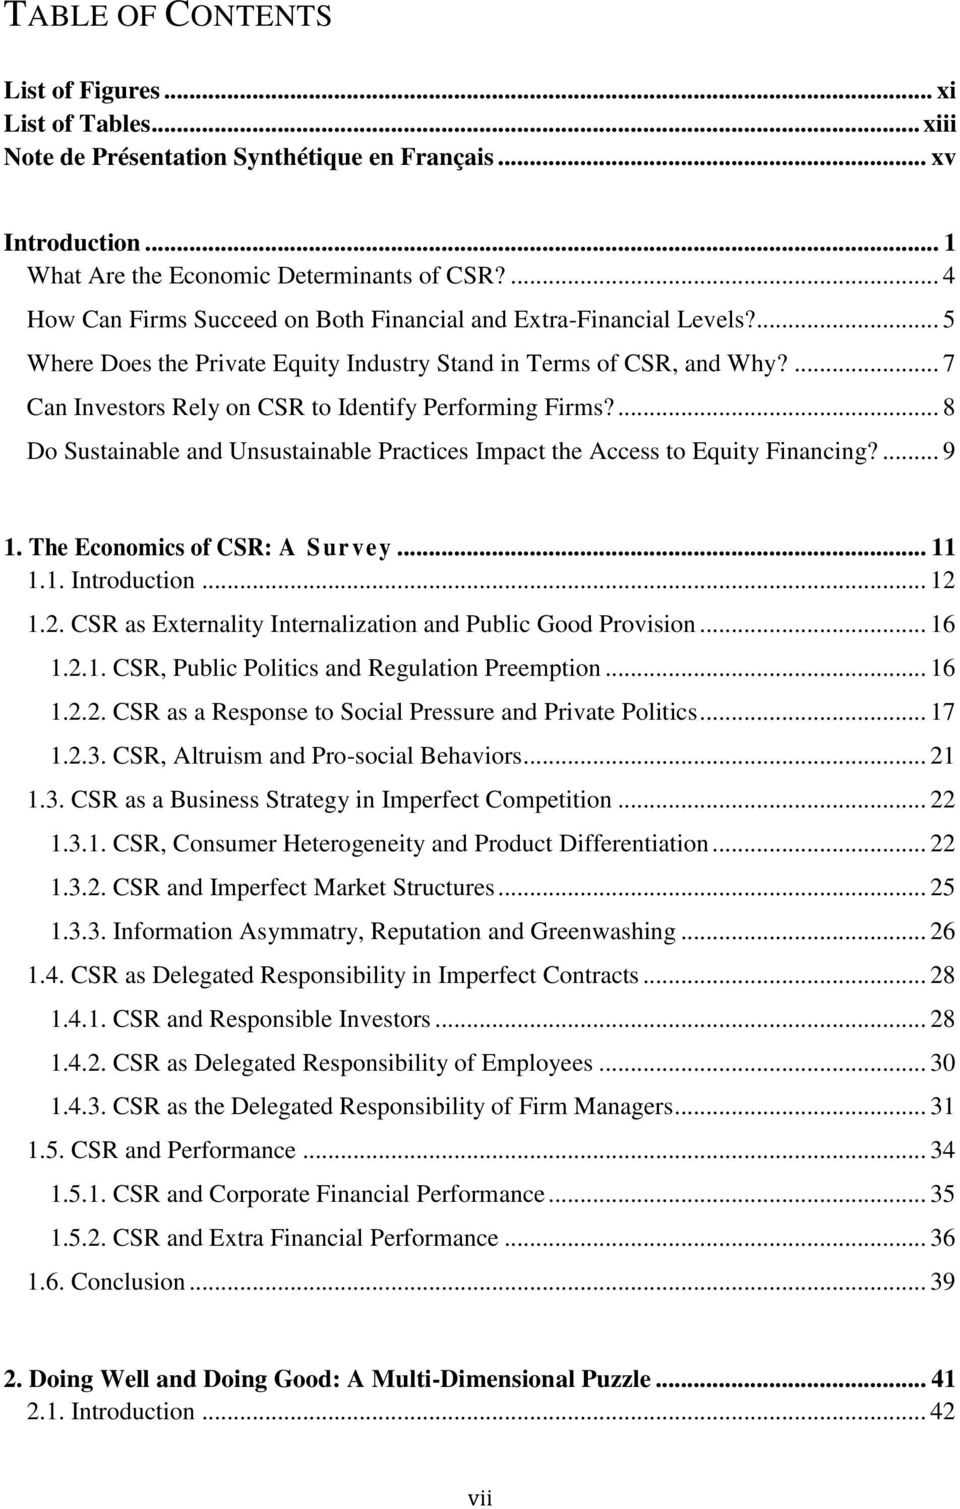 ... 7 Can Investors Rely on CSR to Identify Performing Firms?... 8 Do Sustainable and Unsustainable Practices Impact the Access to Equity Financing?... 9 1. The Economics of CSR: A Survey... 11 1.1. Introduction.